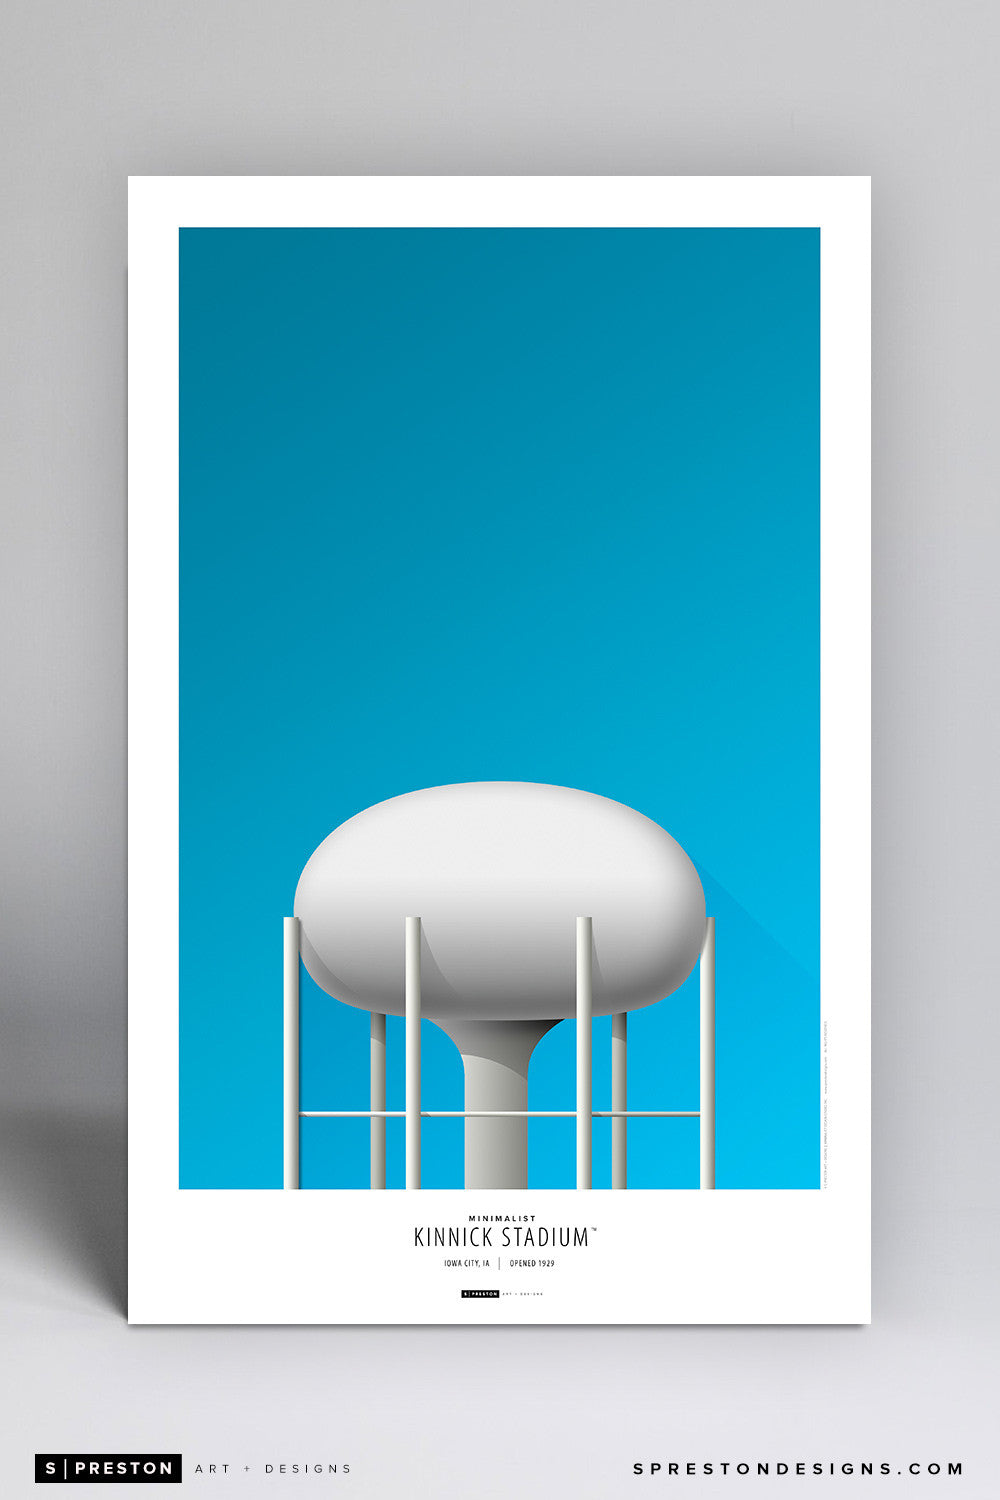 Minimalist Kinnick Stadium Poster Print - University of Iowa - S. Preston Art + Designs